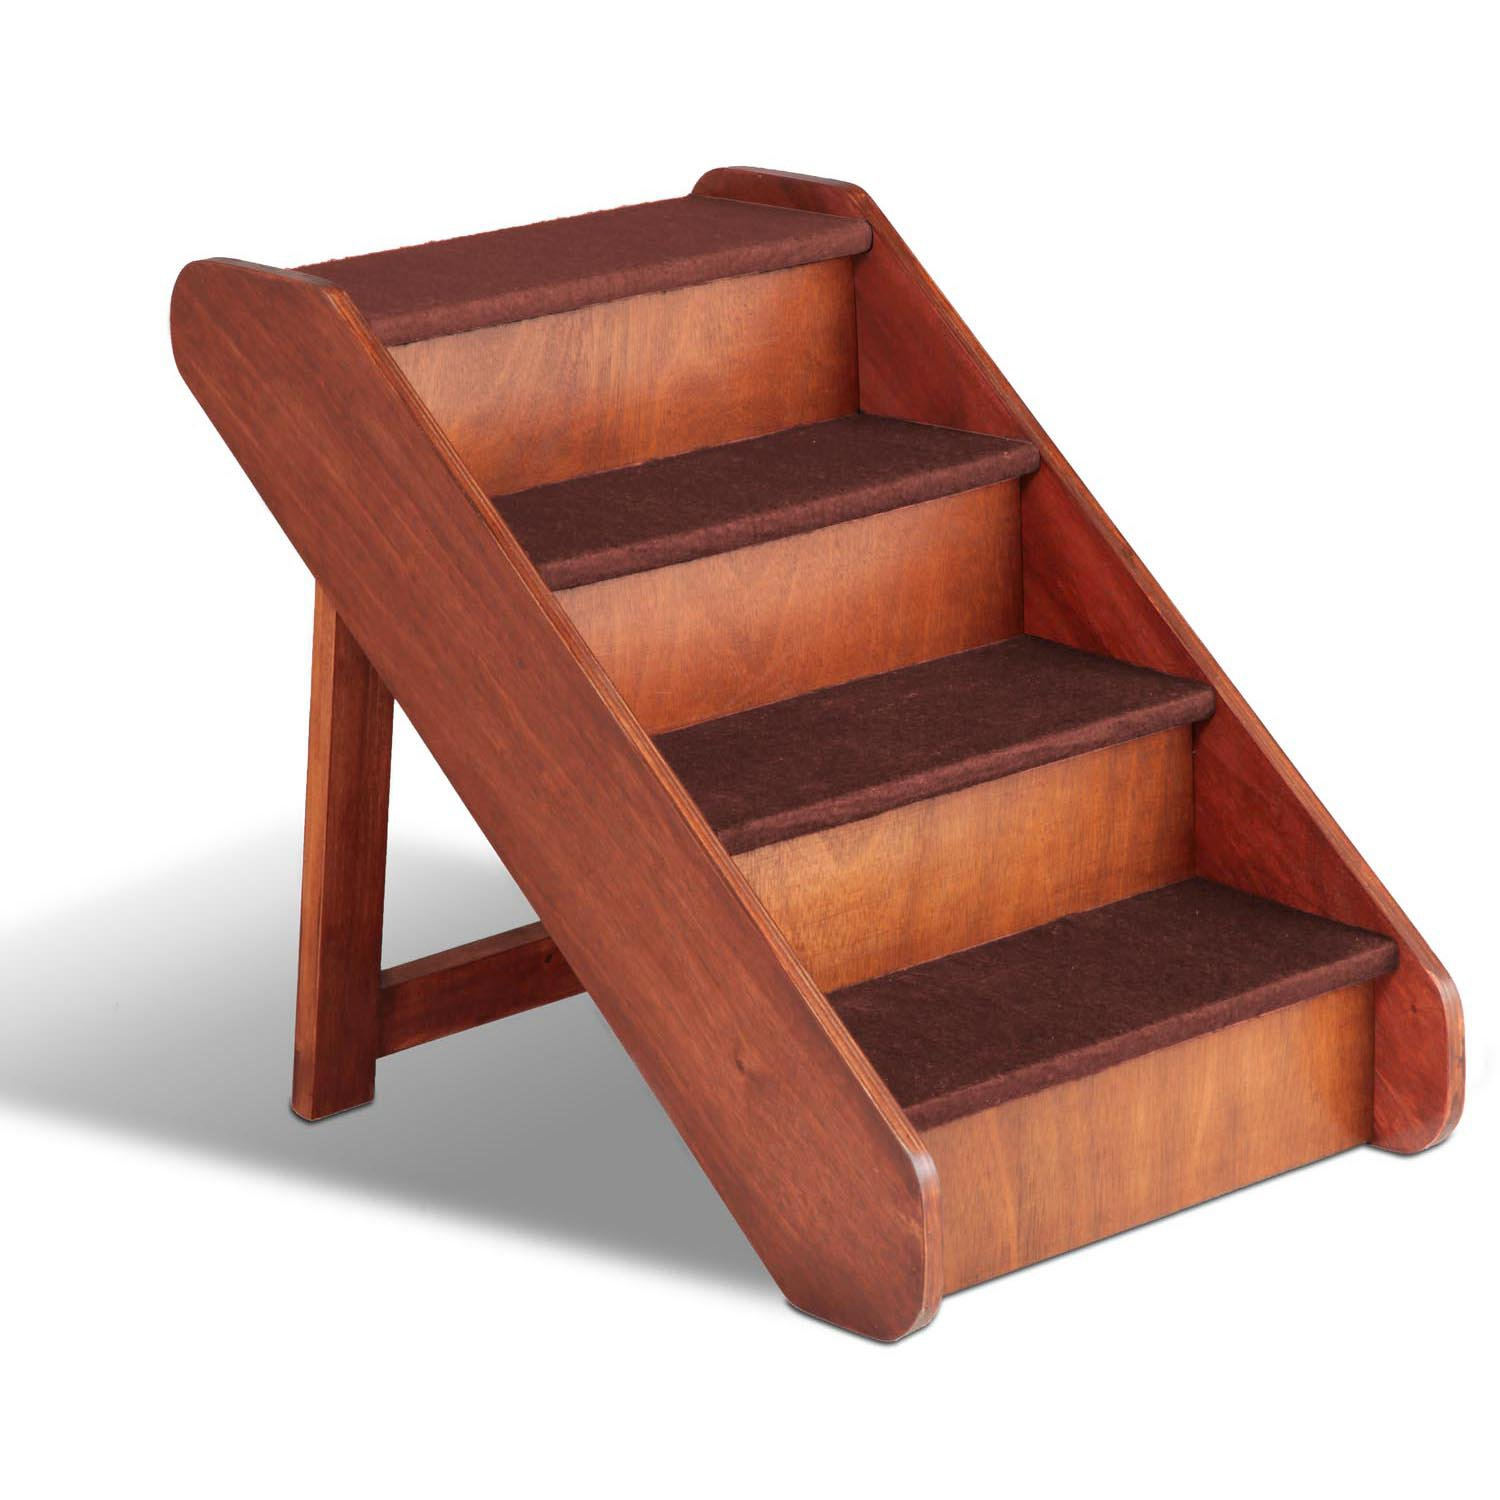 Merveilleux Solvit PupSTEP Large Wood Pet Stairs | Petco